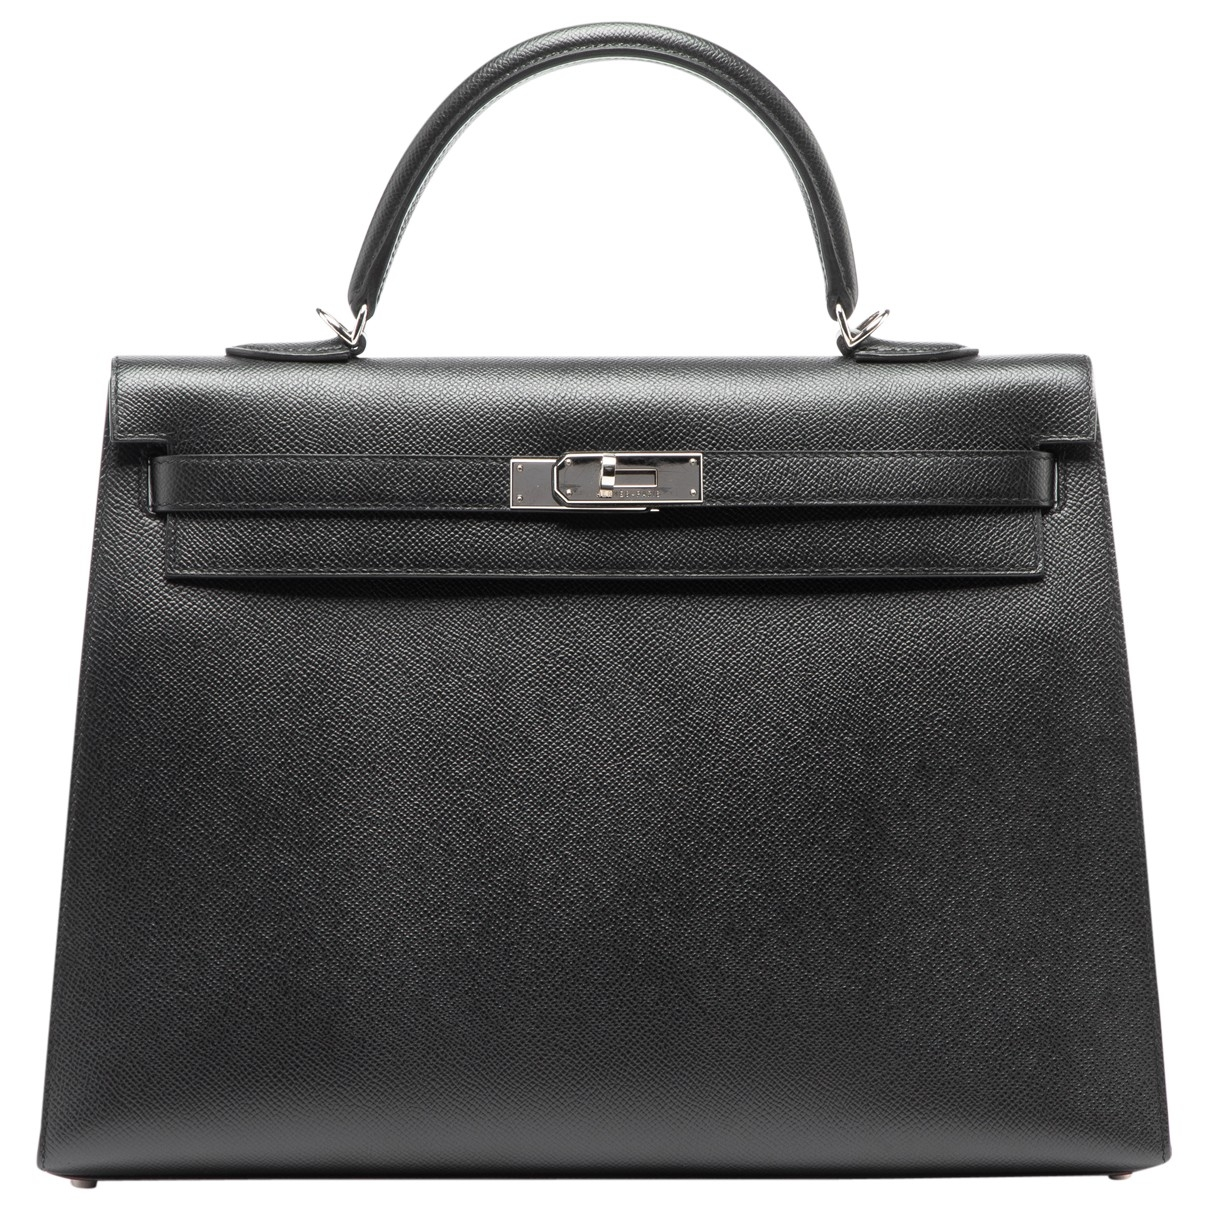 Hermès Kelly 35 Black Leather handbag for Women \N